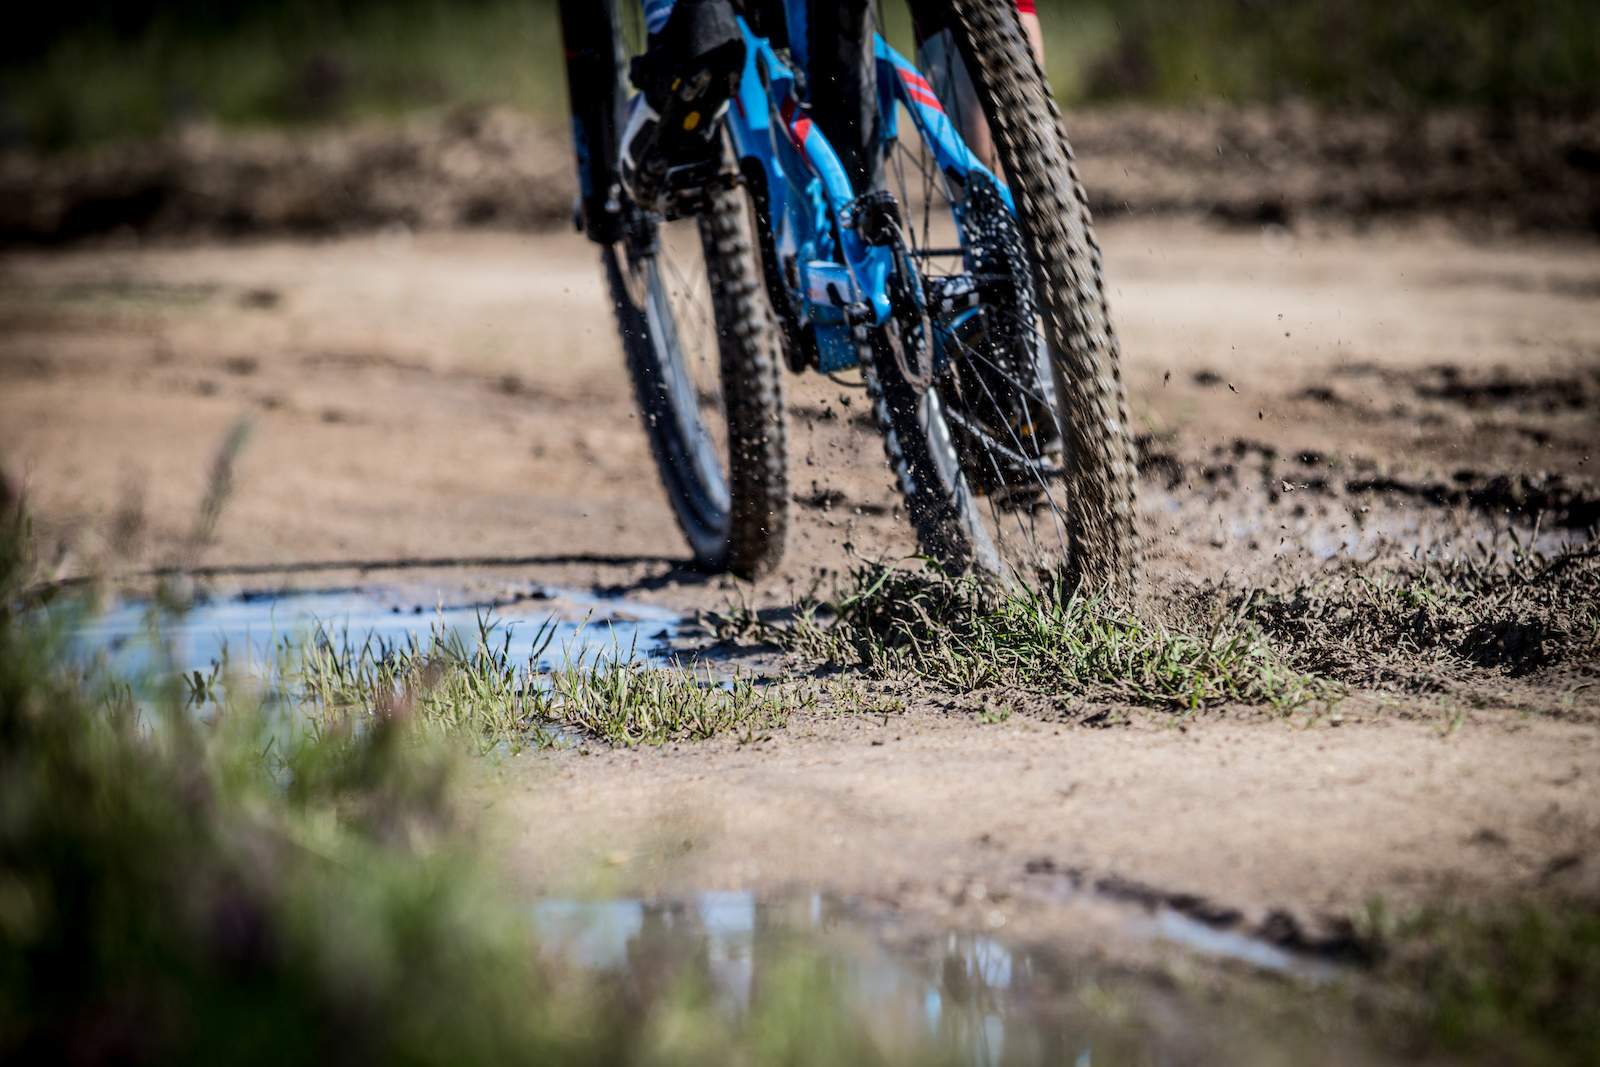 With rain 3 out of 4 days leading up to the opening Sea Otter event left the trails wet and muddy in many places including the ridgeline of stage 2.